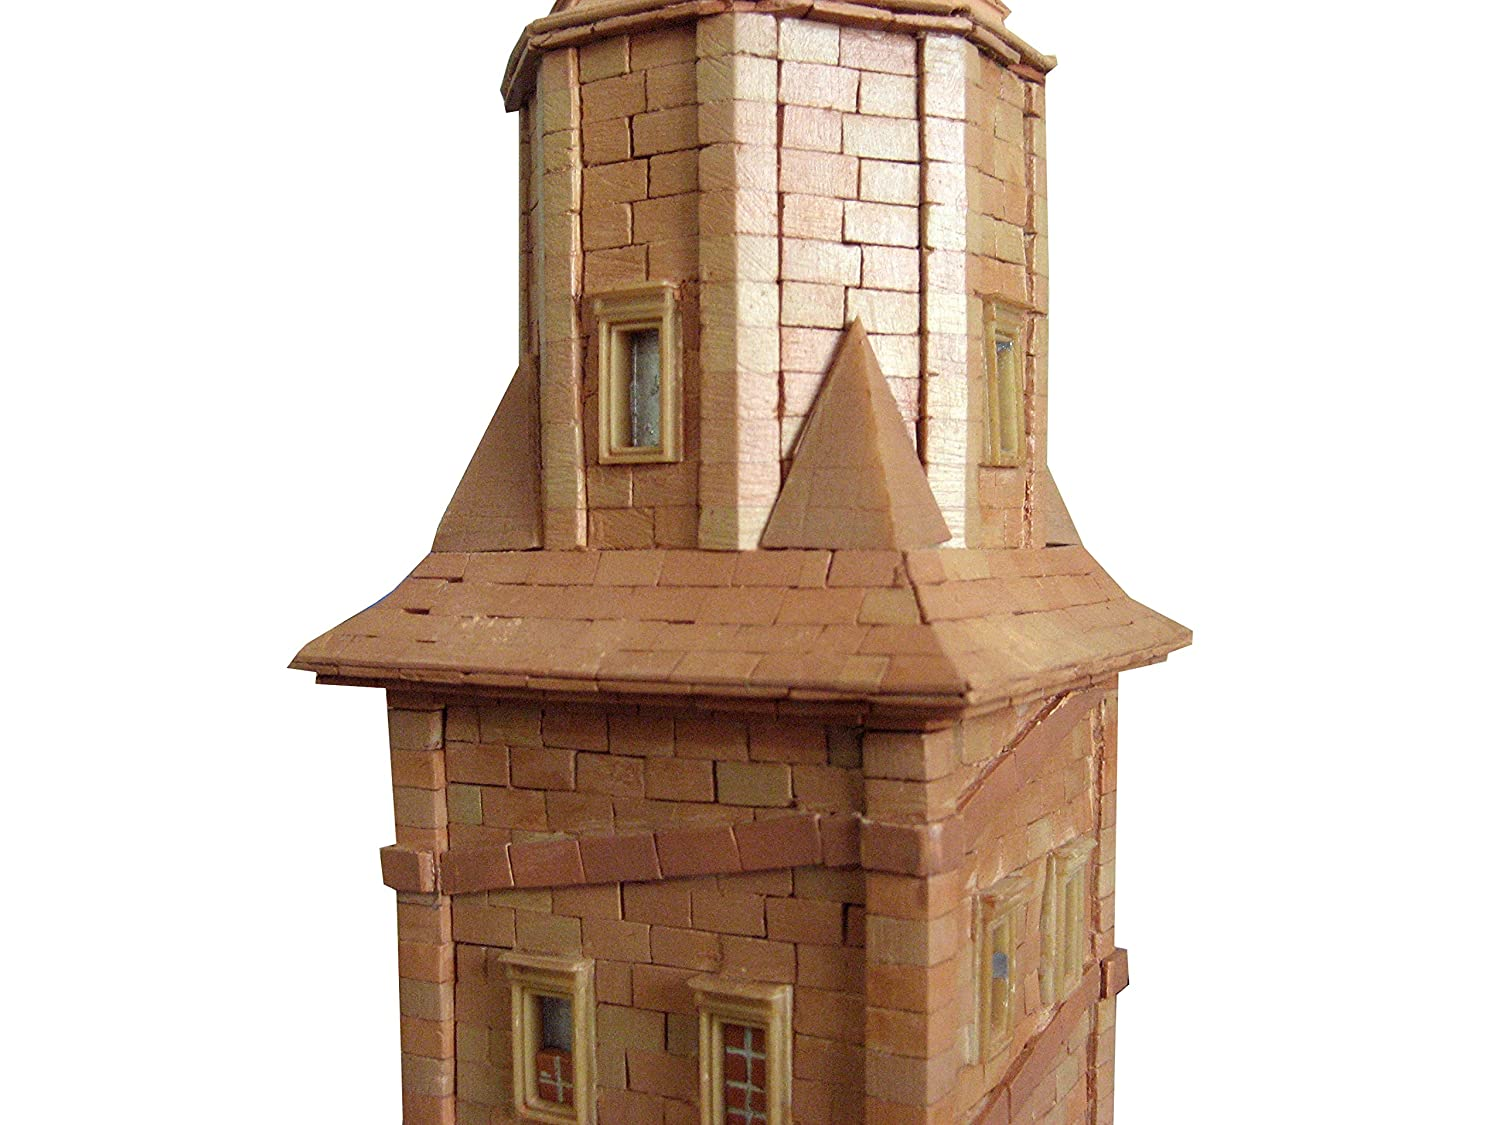 Amazon.com: KERANOVA 30108 Historic Buildings 2930 Pieces ...